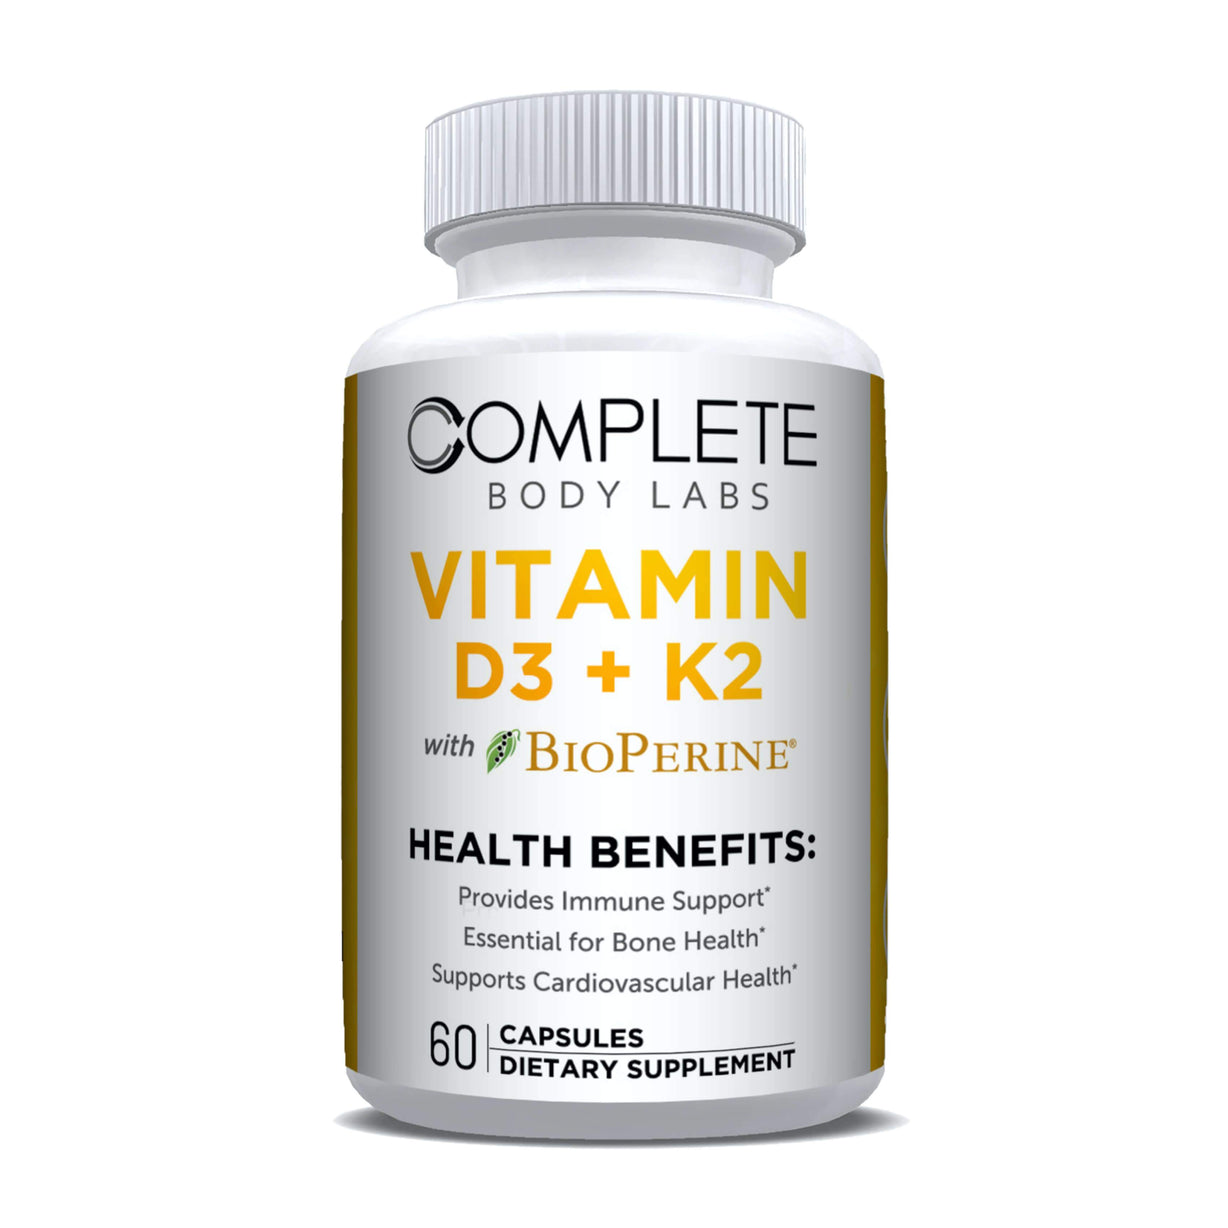 VITAMIN D3 + K2 Complete Body Labs | Probiotics, Nootropics, Brain Supplements, Protein Bars, Workout Supplements, Health Supplements, Omega-3 & Essential Vitamins For Men & Women